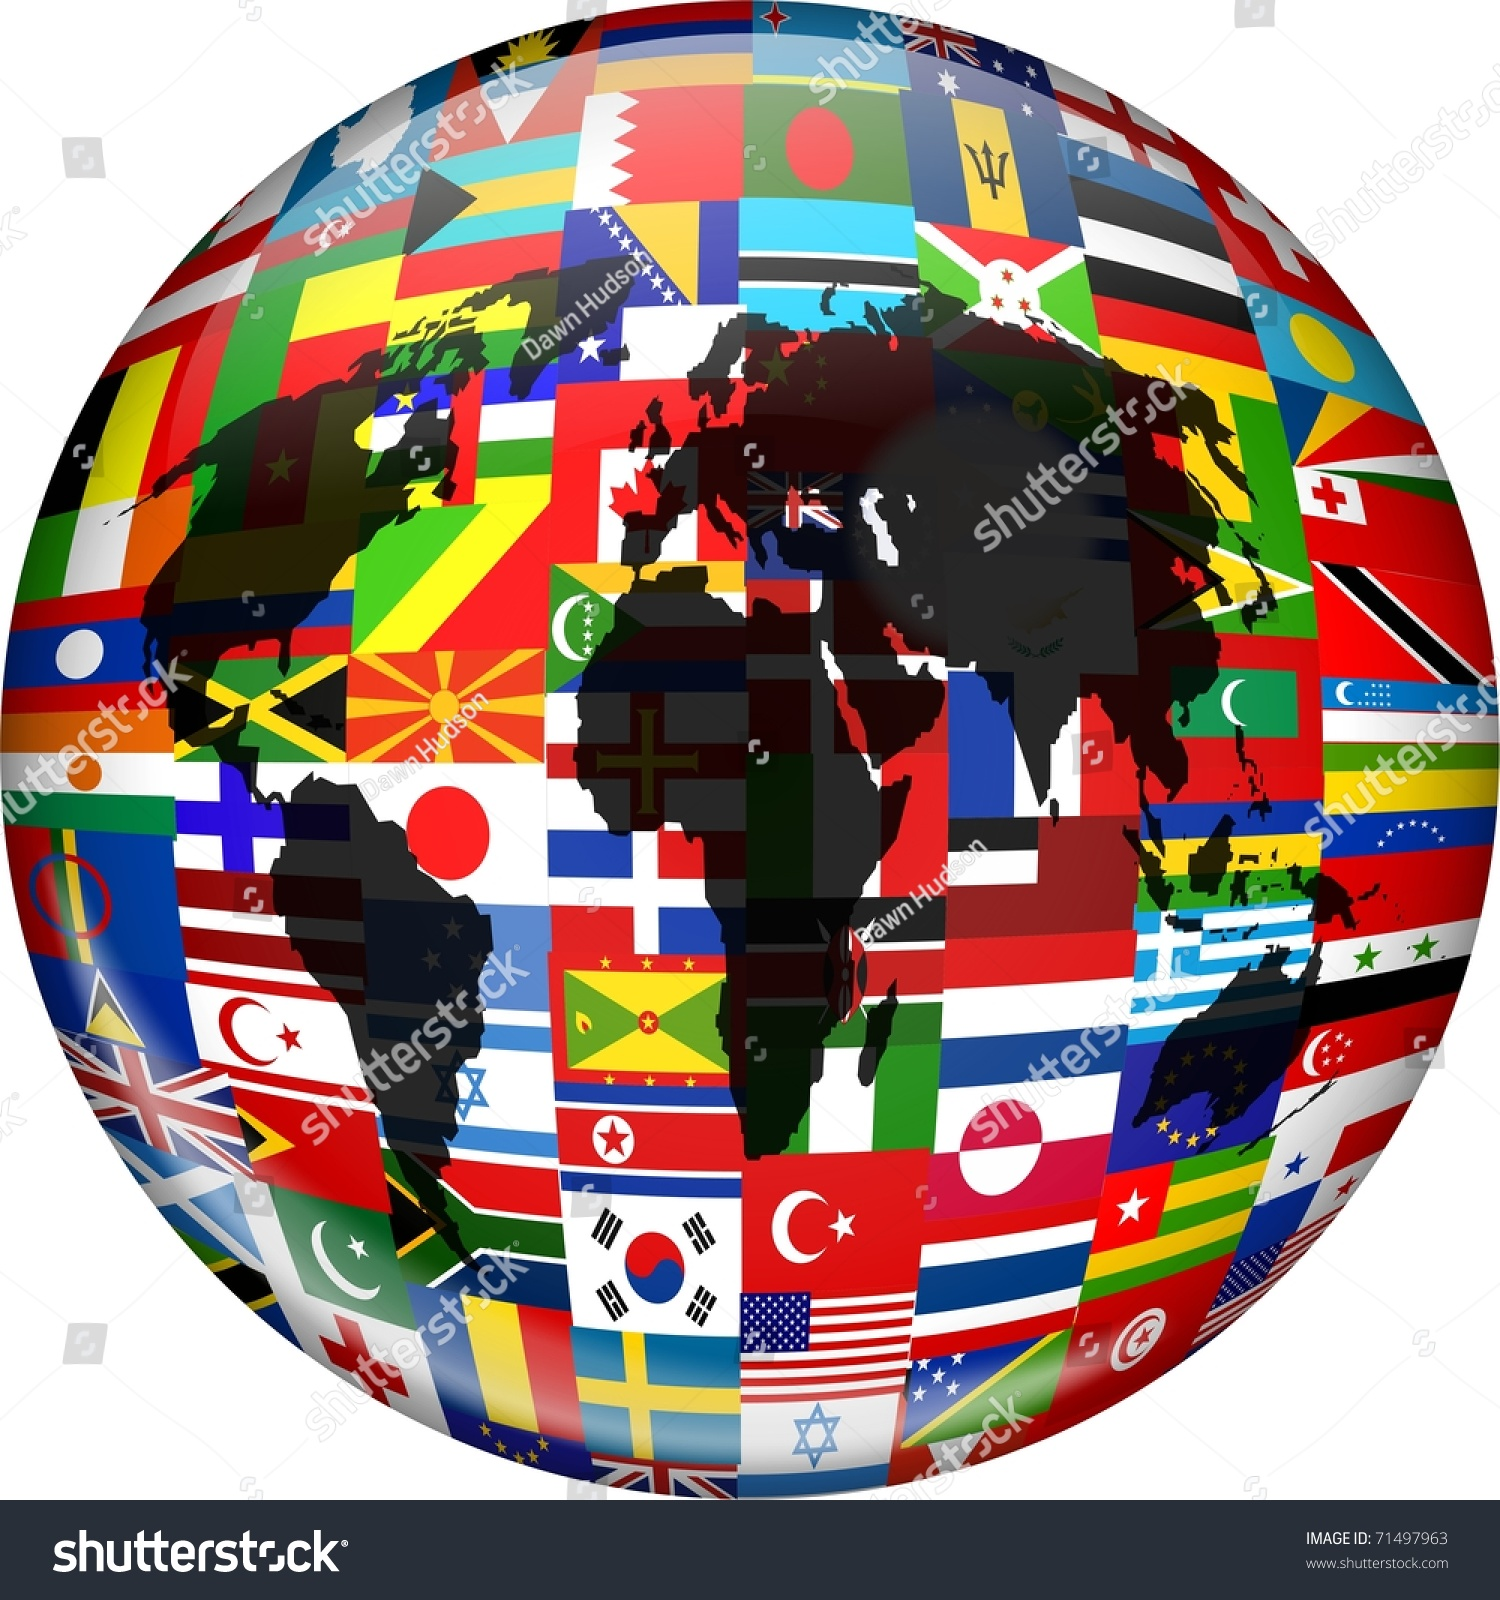 Colourful globe illustration made flags all stock illustration colourful globe illustration made up of flags from all over the world and incorporating a world gumiabroncs Images